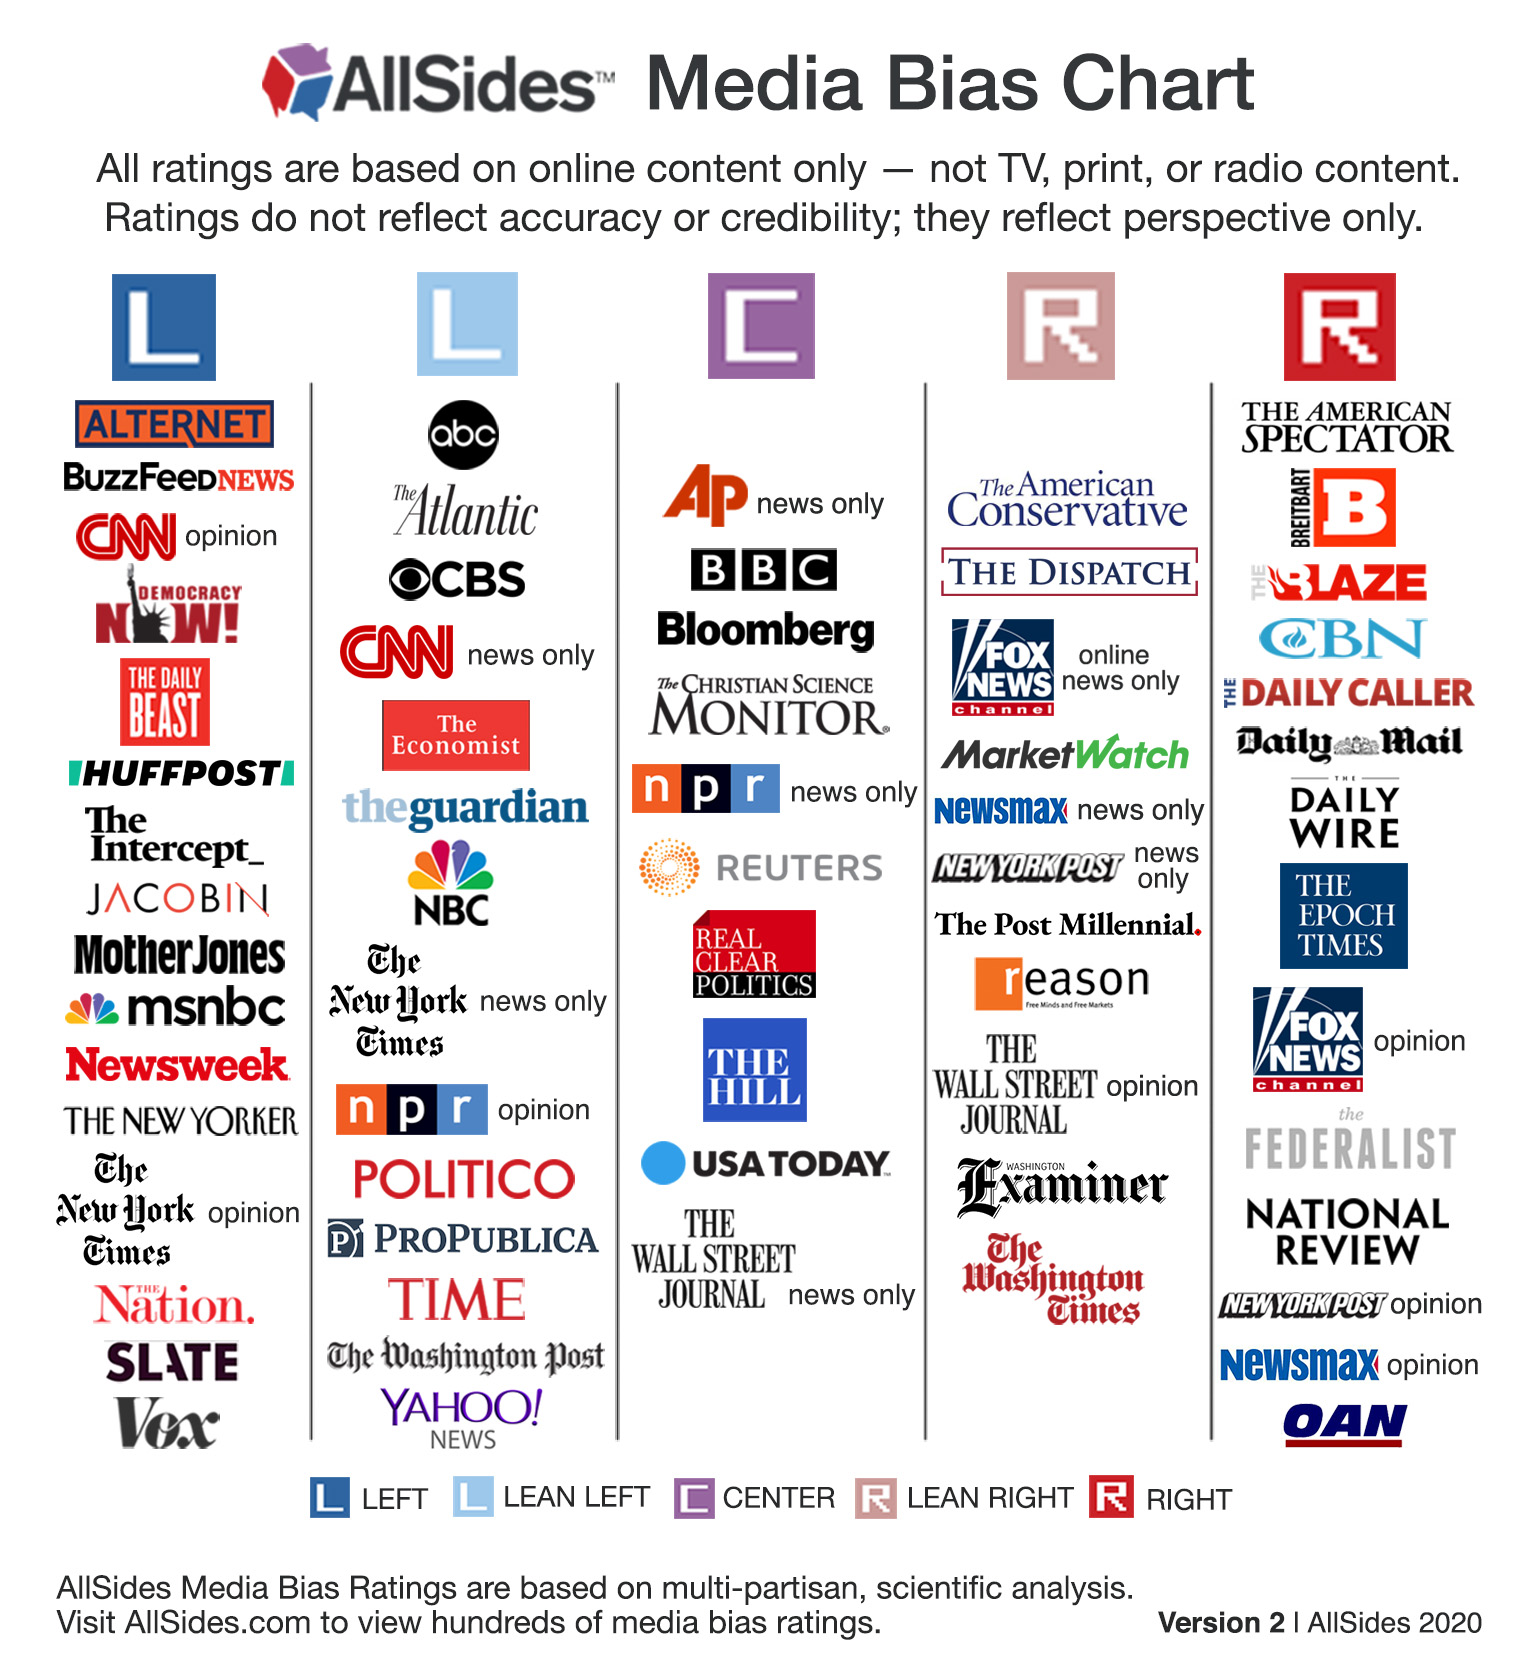 image of the allsides media bias chart which shows approximately 50 news outlets and where they fall on the bias spectrum.